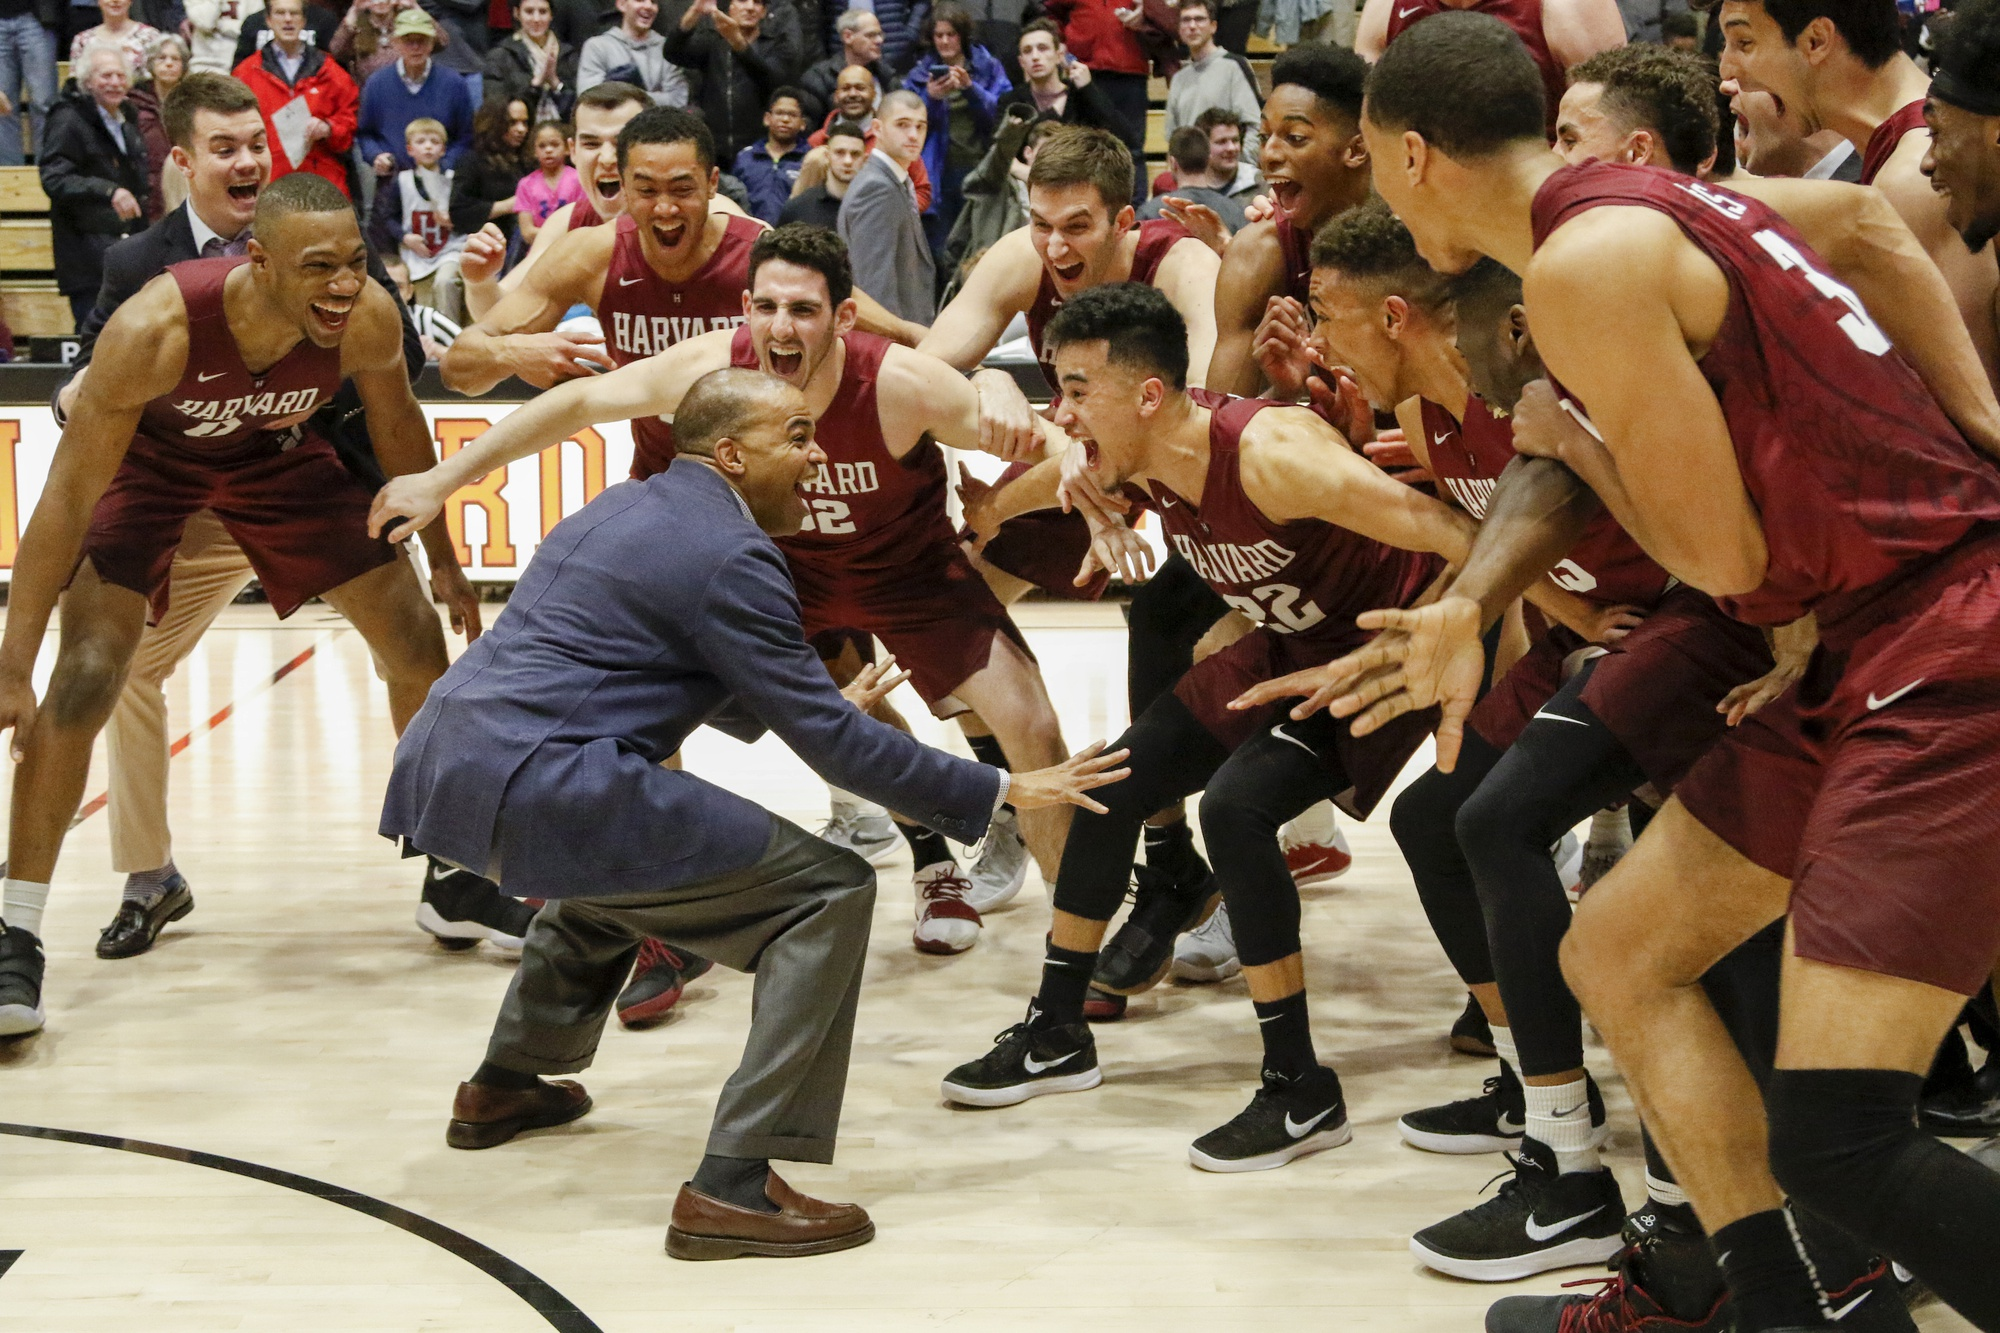 Head coach Tommy Amaker stands in front of his team following Harvard's 93-74 win against Columbia this season. The win gives the Crimson its sixth Ivy League title in eight years.